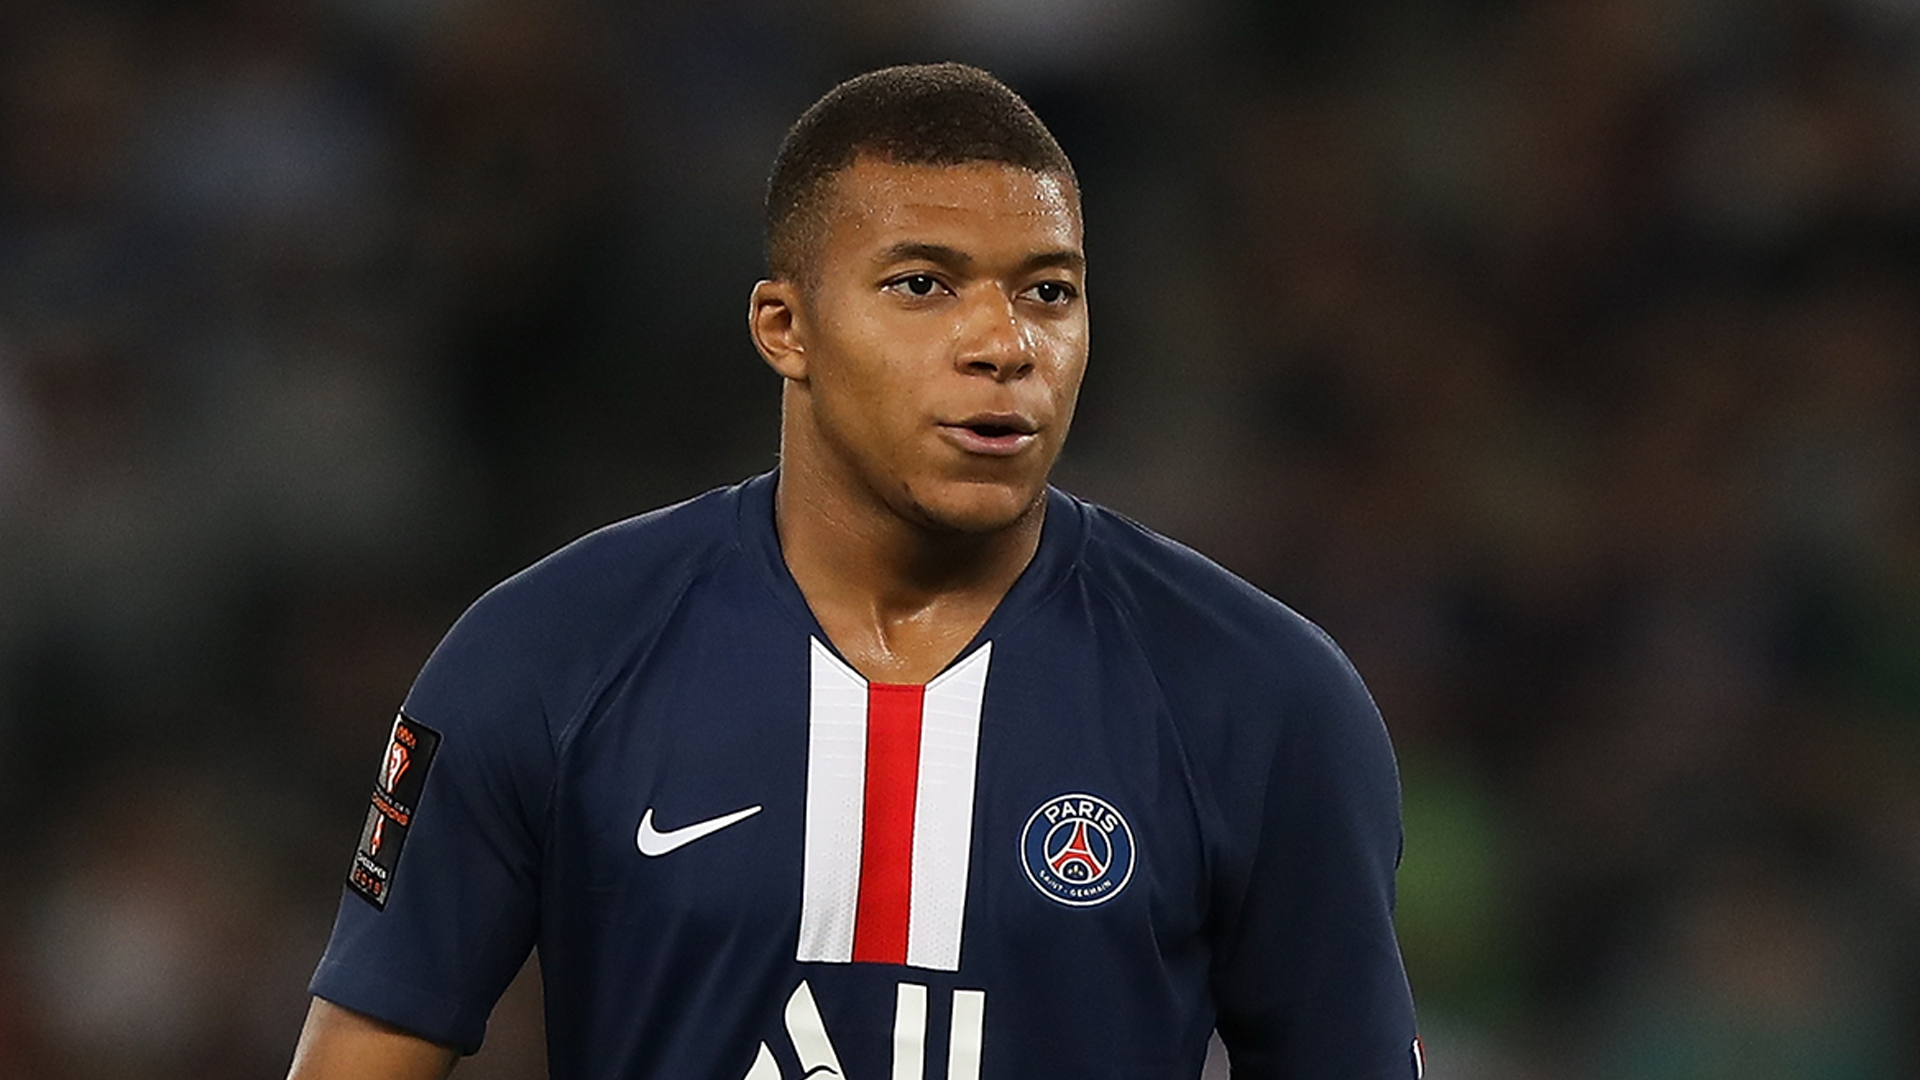 Mbappe's reason for not signing for Real Madrid revealed by former Monaco vice-president Vasilyev